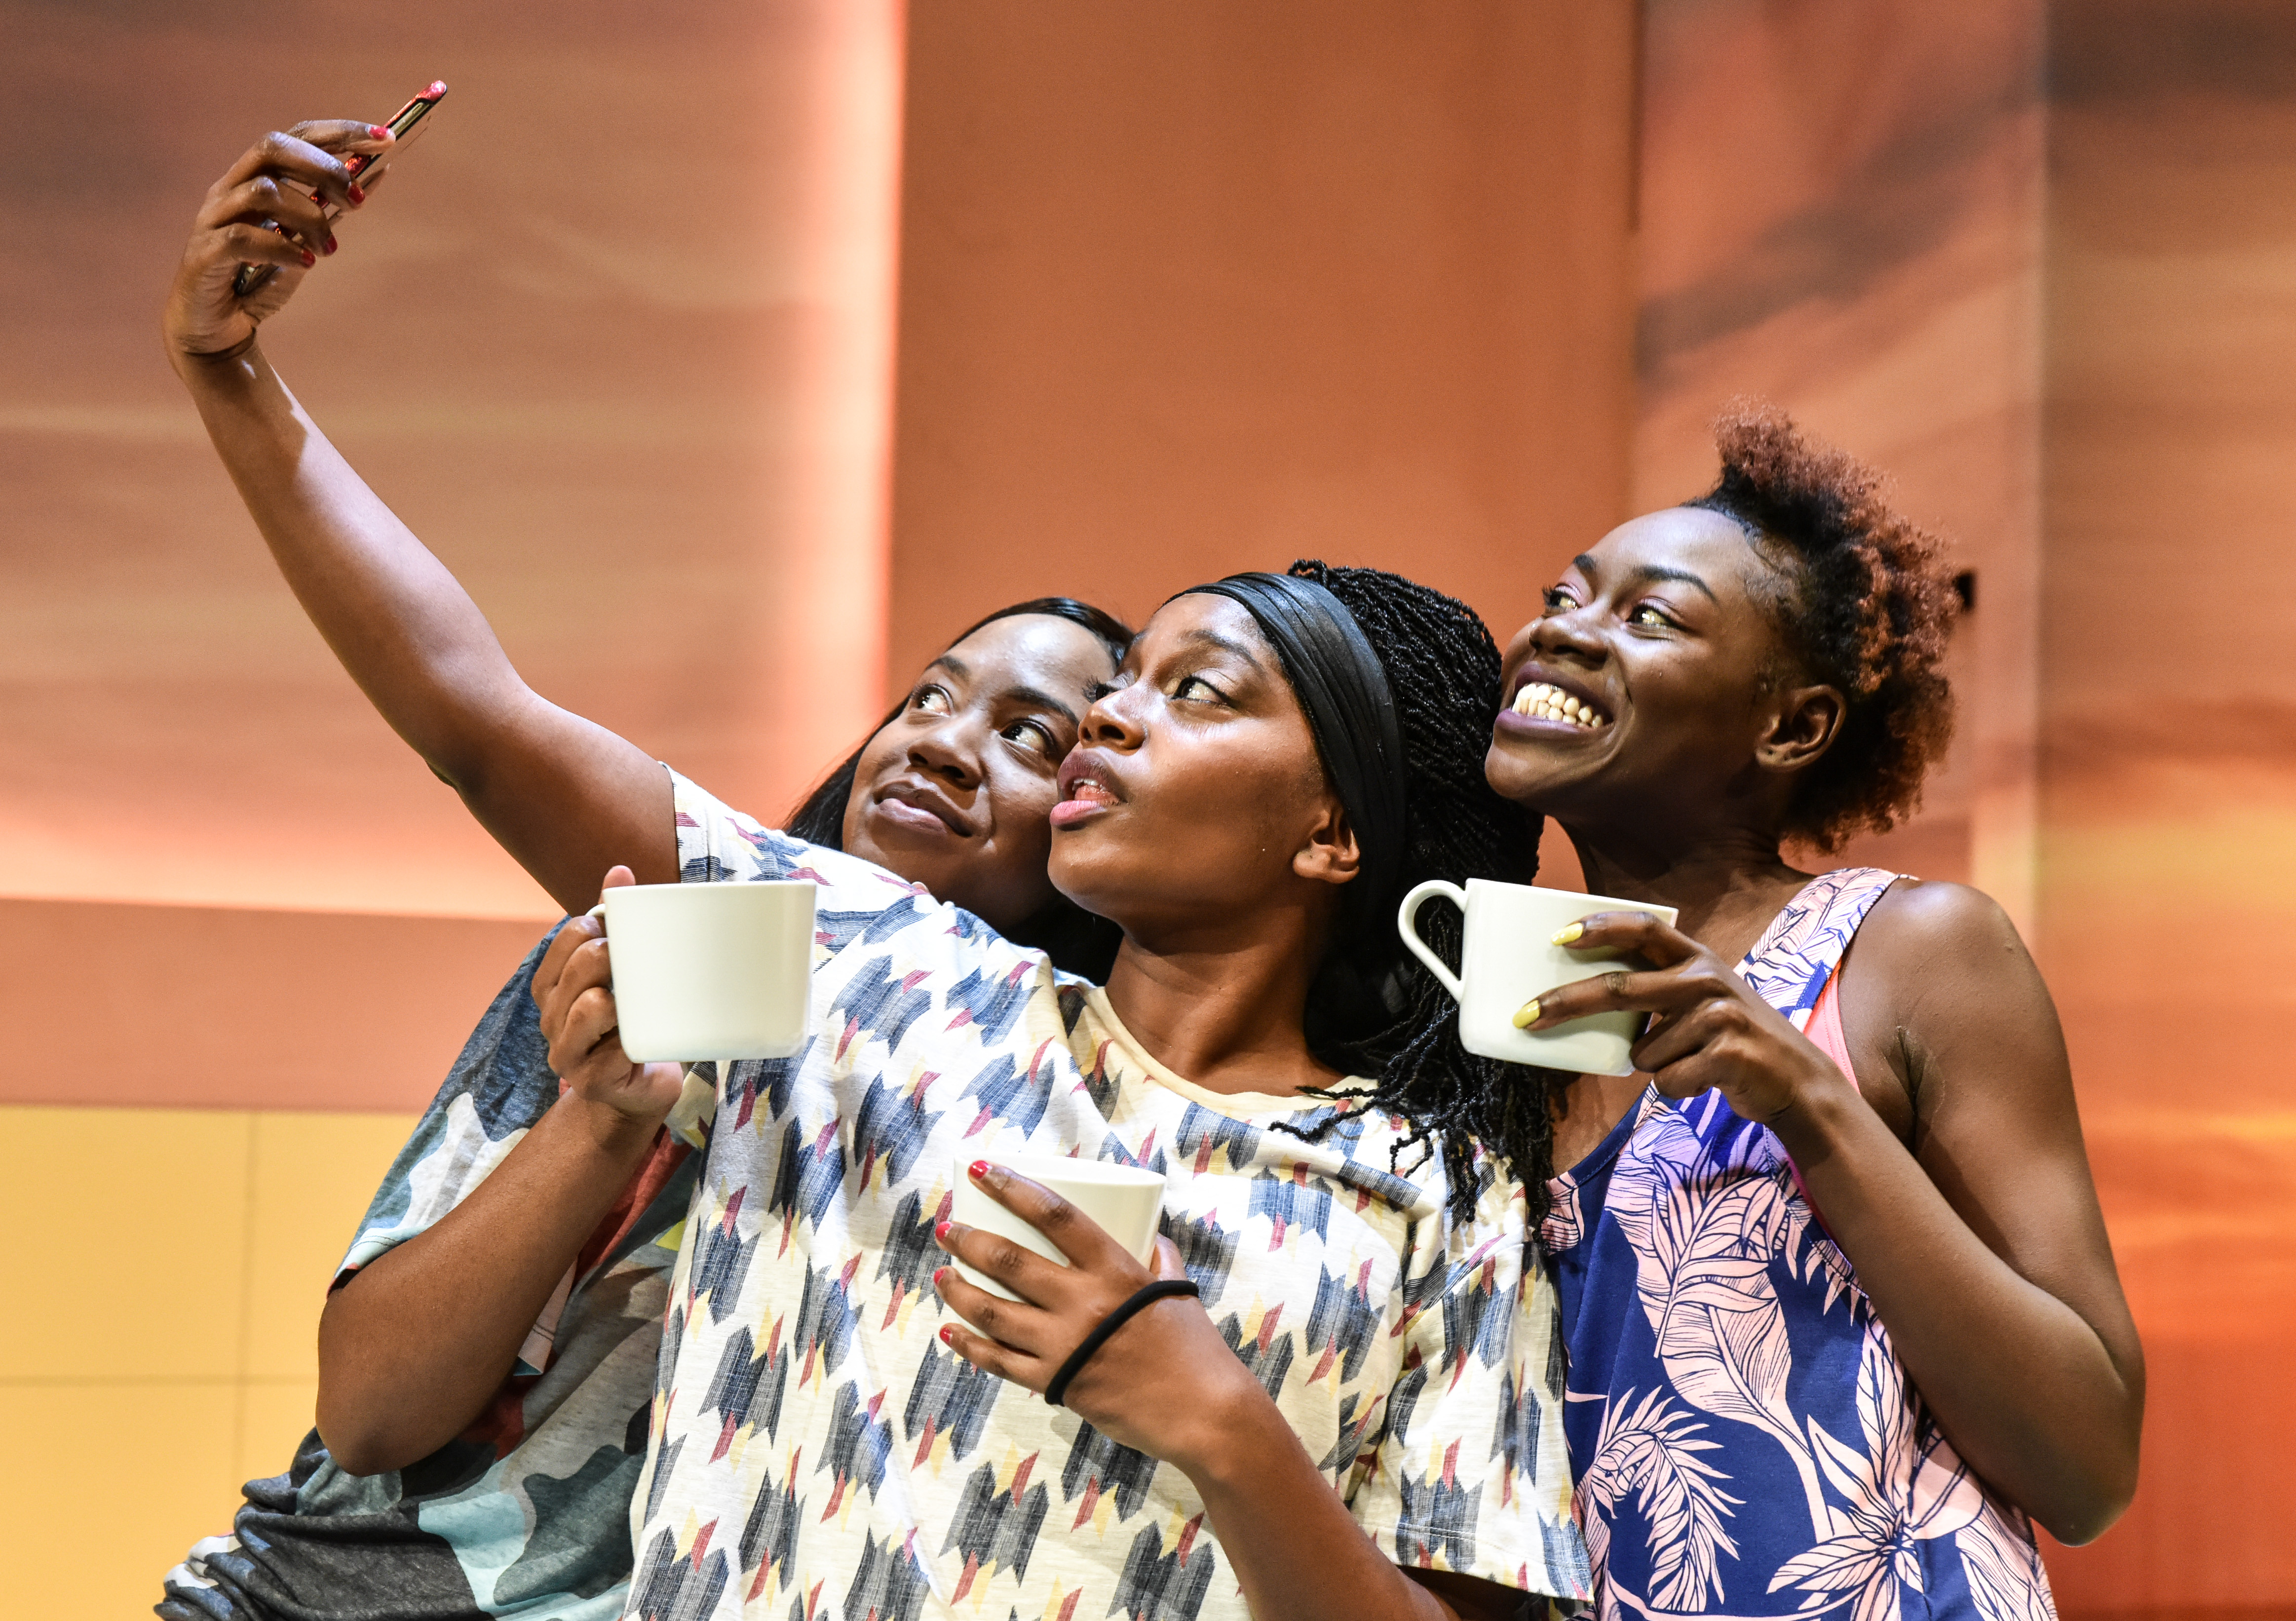 Nicola Maisie Taylor (J), Aretha Ayeh (Alex) and Marième Diouf (Bim) in The Hoes at Hampstead Downstairs. Photo credit Robert Day.